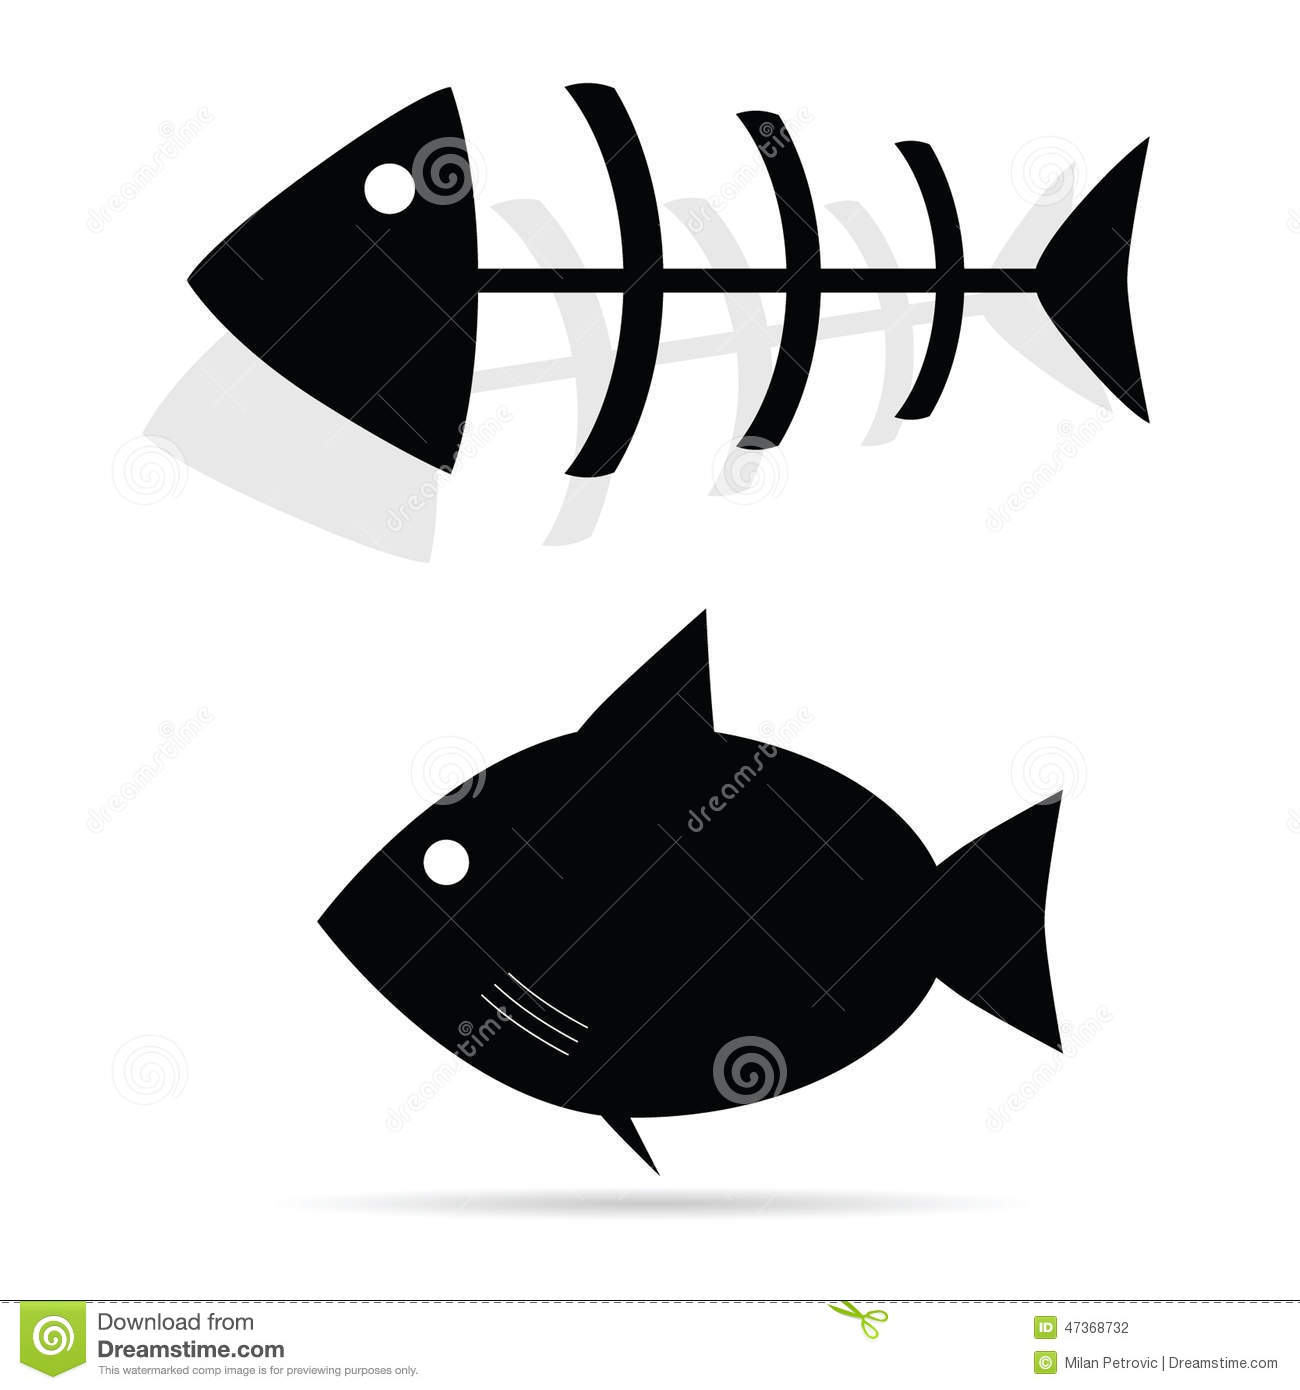 Fish Vector Black Art Illustration Stock Vector - Image: 47368732